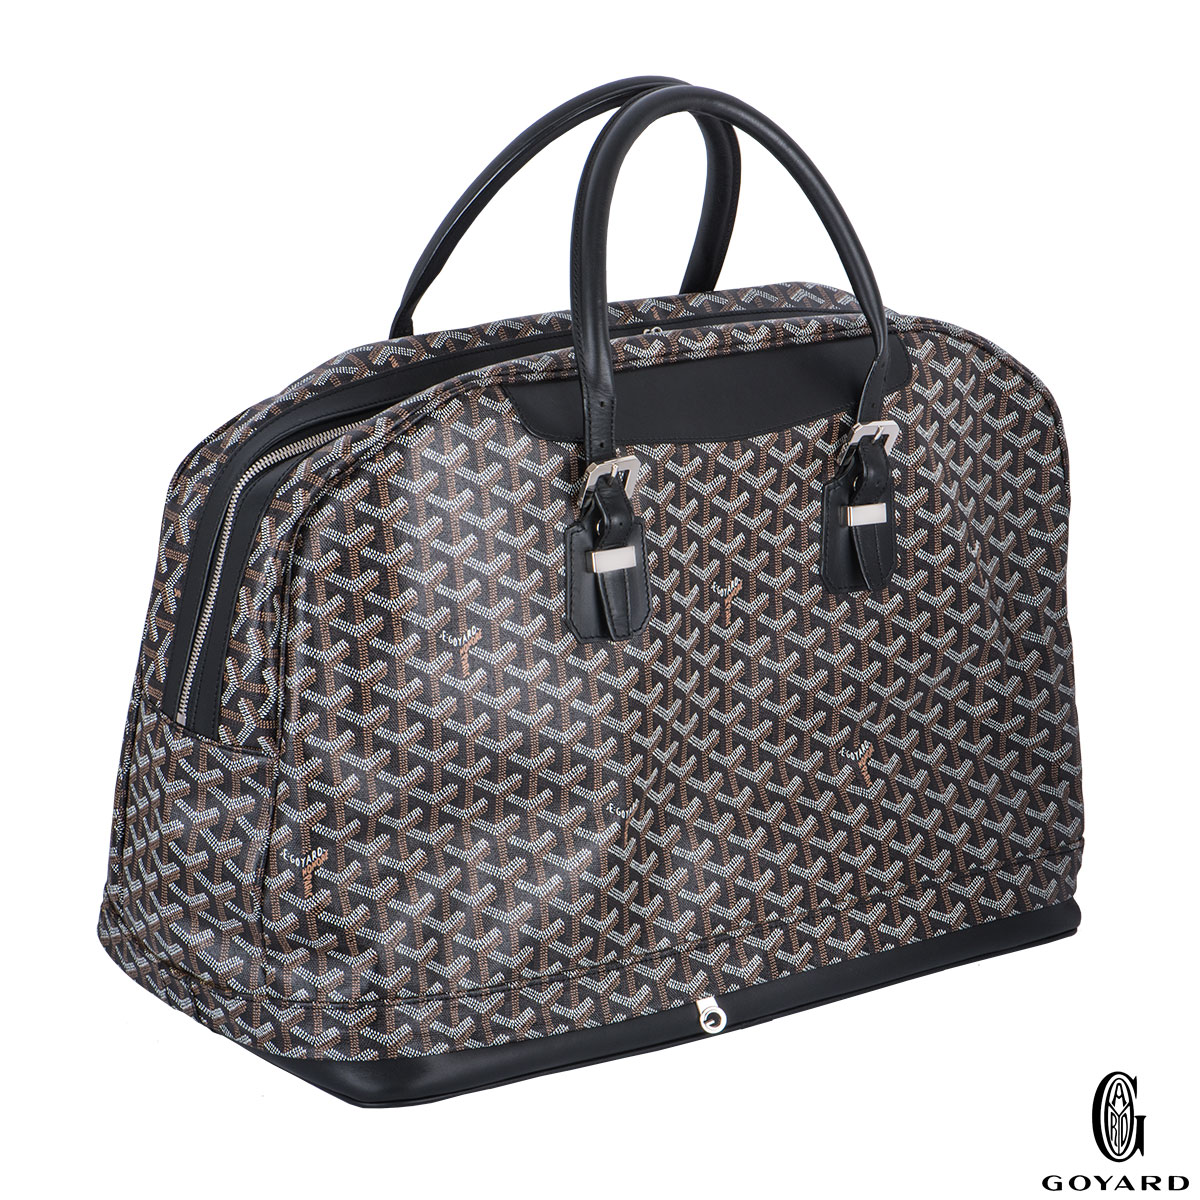 Goyard Hotel Du Parc Canvas Bag